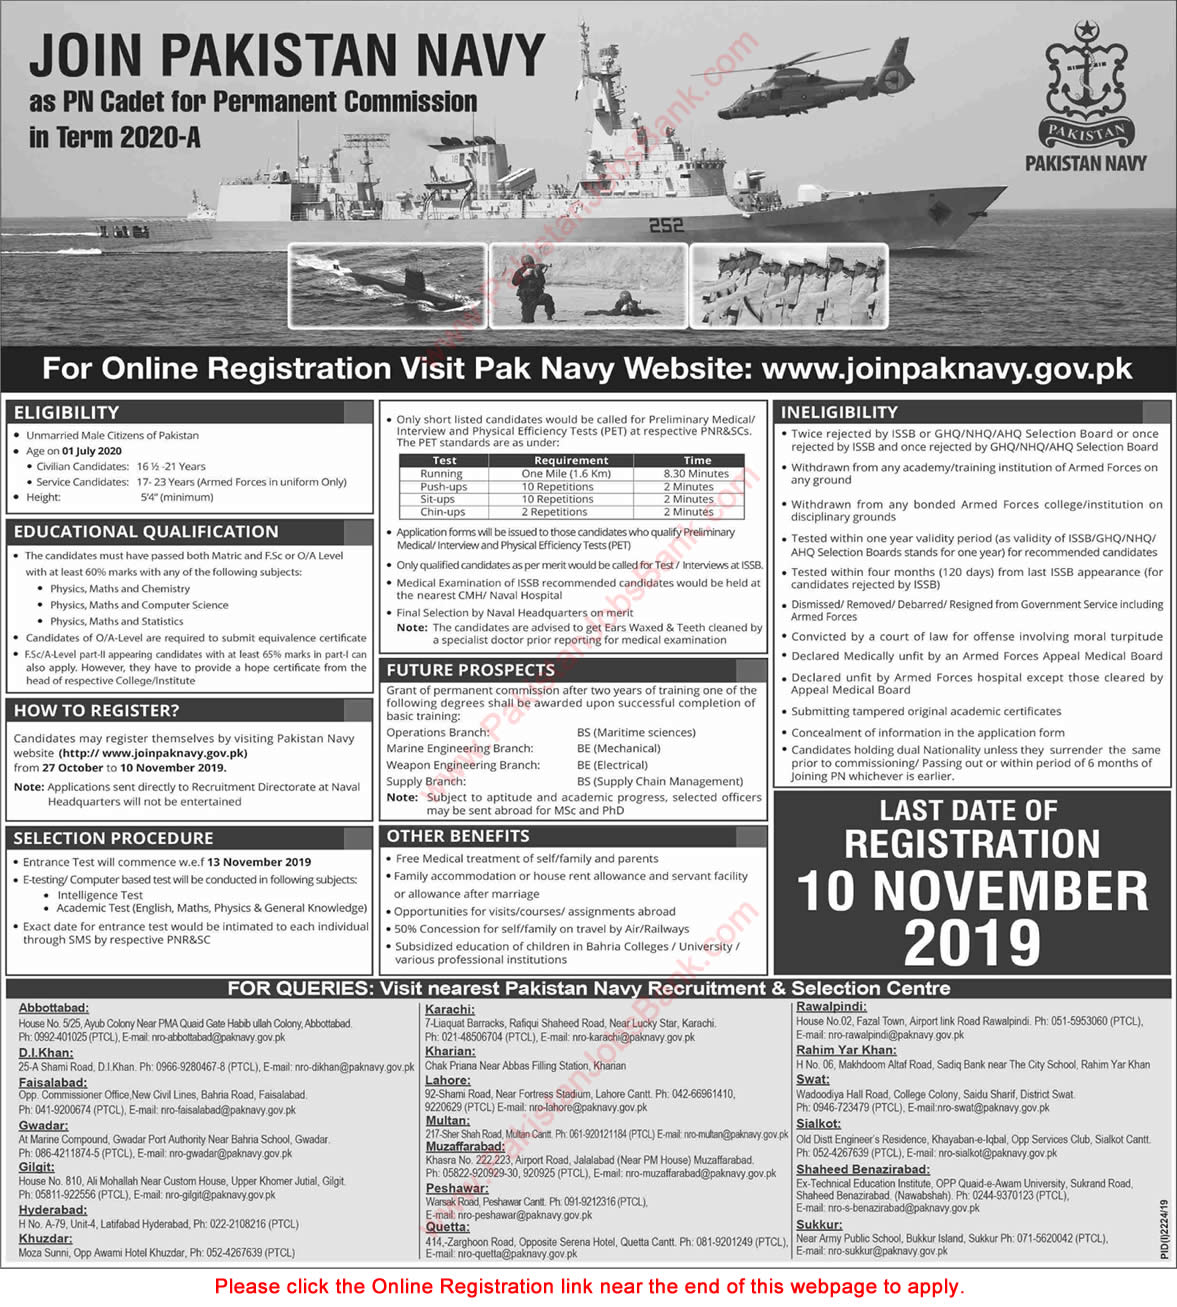 Join Pakistan Navy as PN Cadet October 2019 November Online Registration for Permanent Commission in Term 2020-A Latest